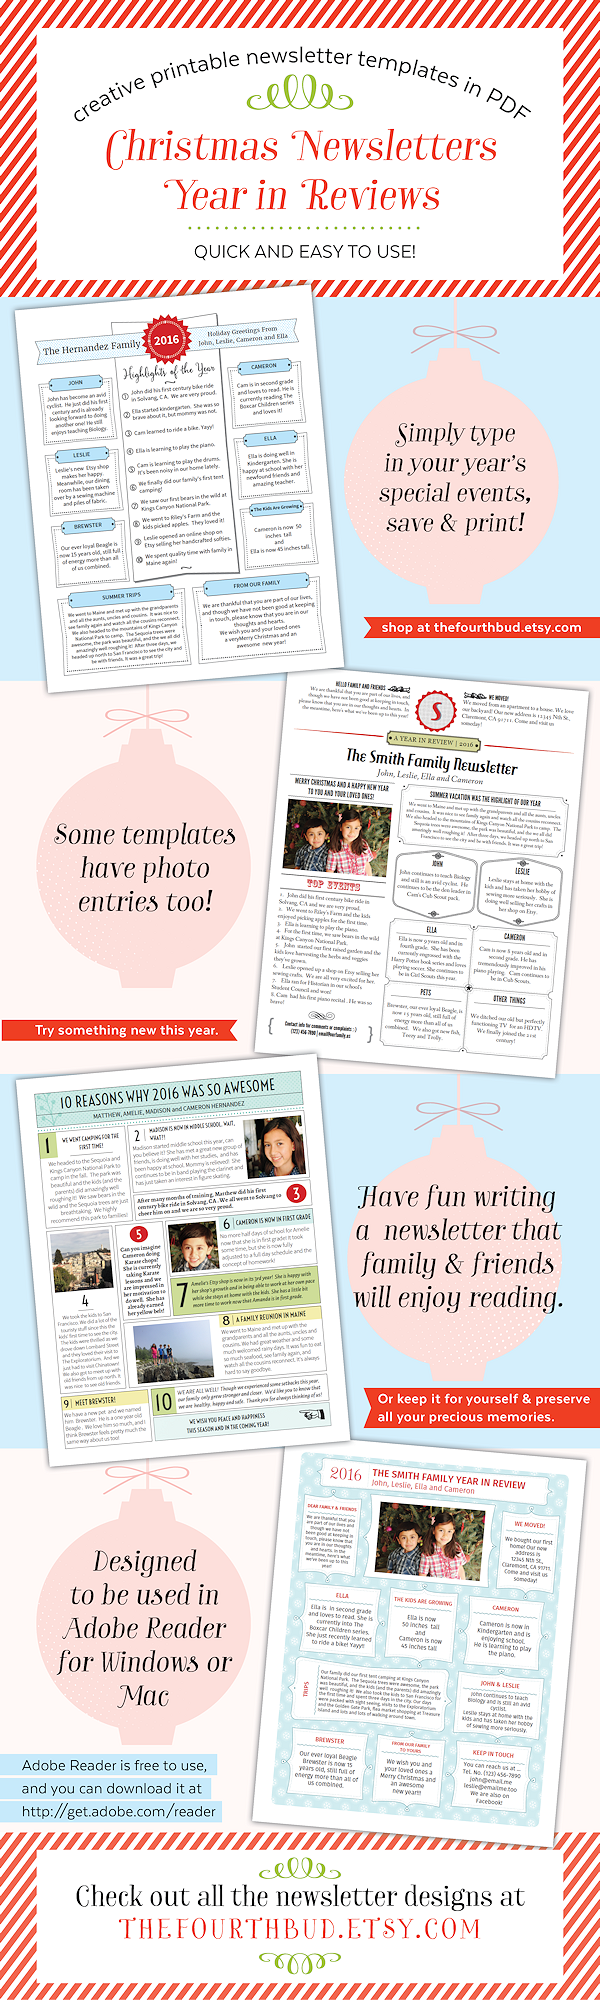 Christmas newsletter and year in review templates the fourth bud christmas newsletters and year in reviews spiritdancerdesigns Image collections